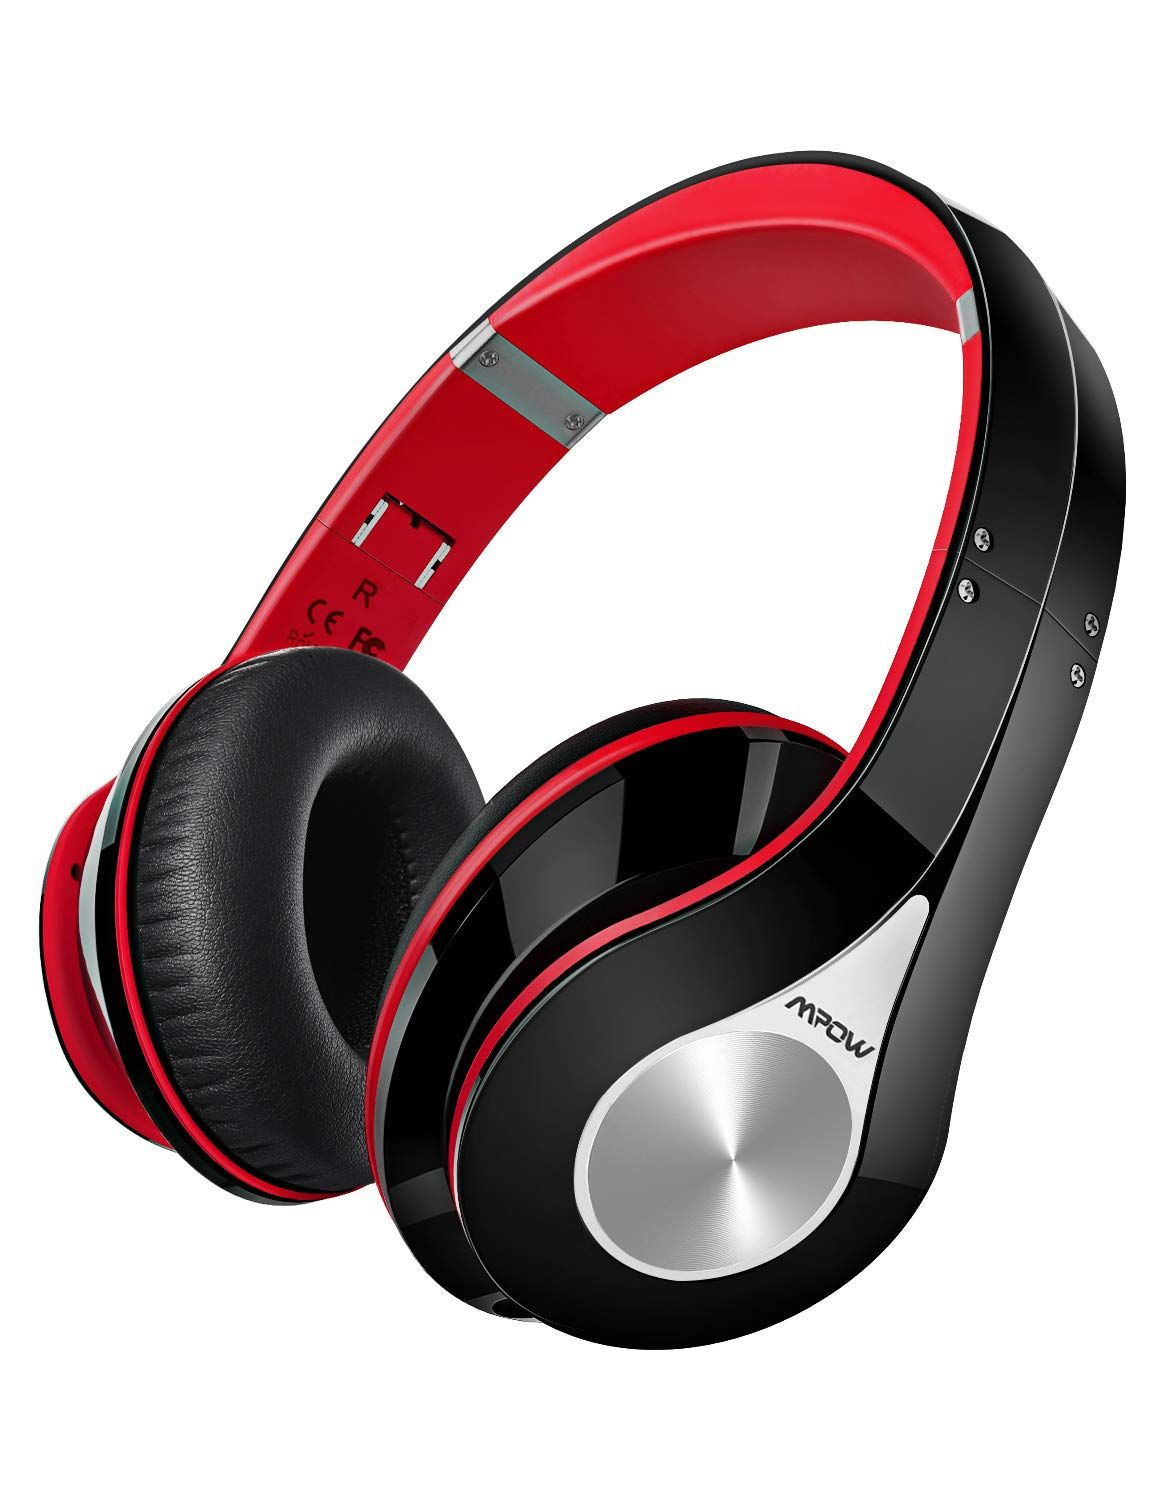 70fee4108301d1 Mpow 059 Bluetooth Headphones Over Ear, Hi-Fi Stereo Wireless Headset,  Foldable, Soft Memory-Protein Earmuffs, w/Built-in Mic and Wired Mode for  PC/Cell ...